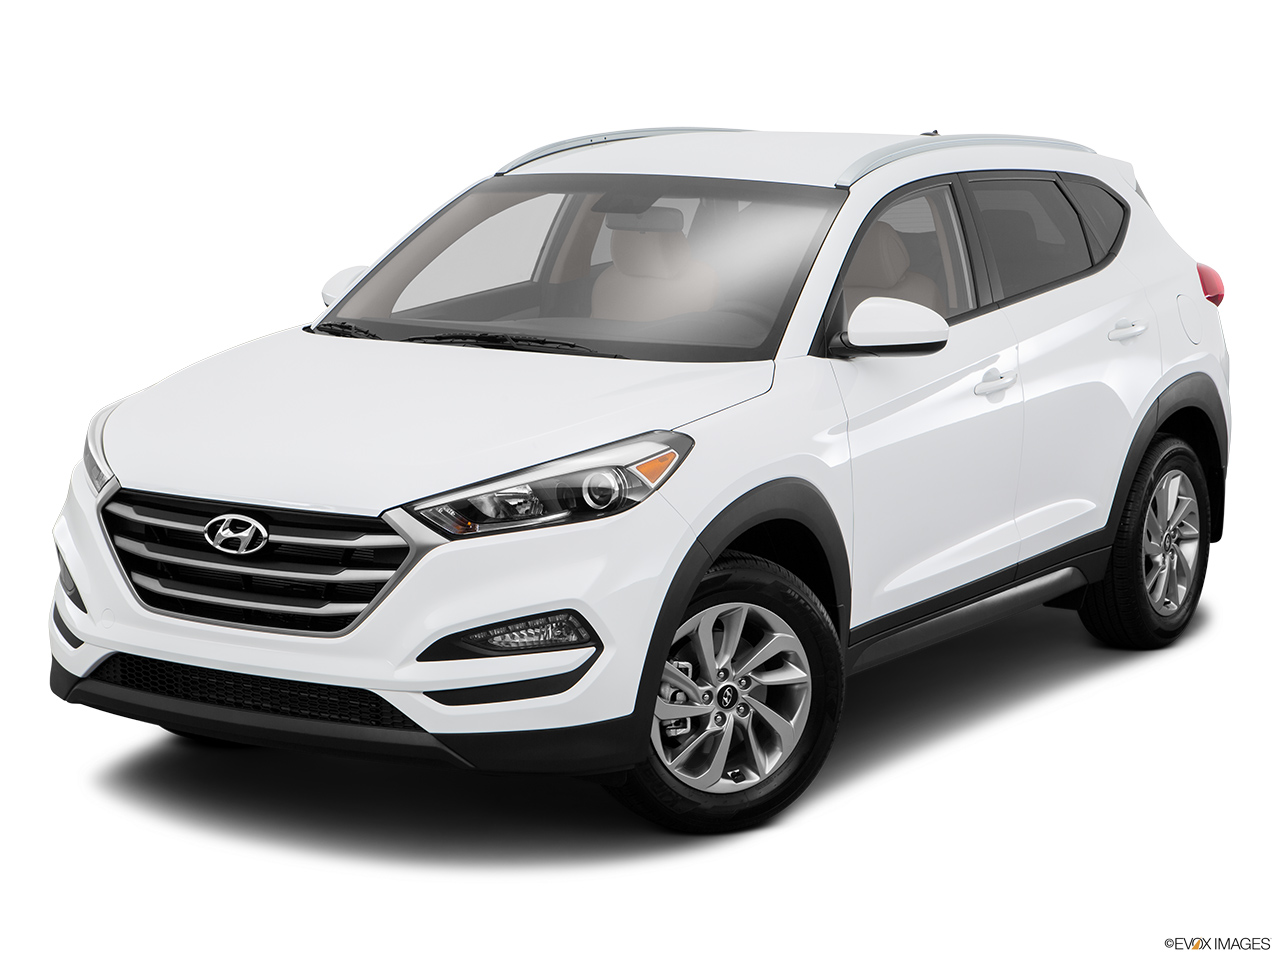 hyundai tucson price in uae new hyundai tucson photos. Black Bedroom Furniture Sets. Home Design Ideas